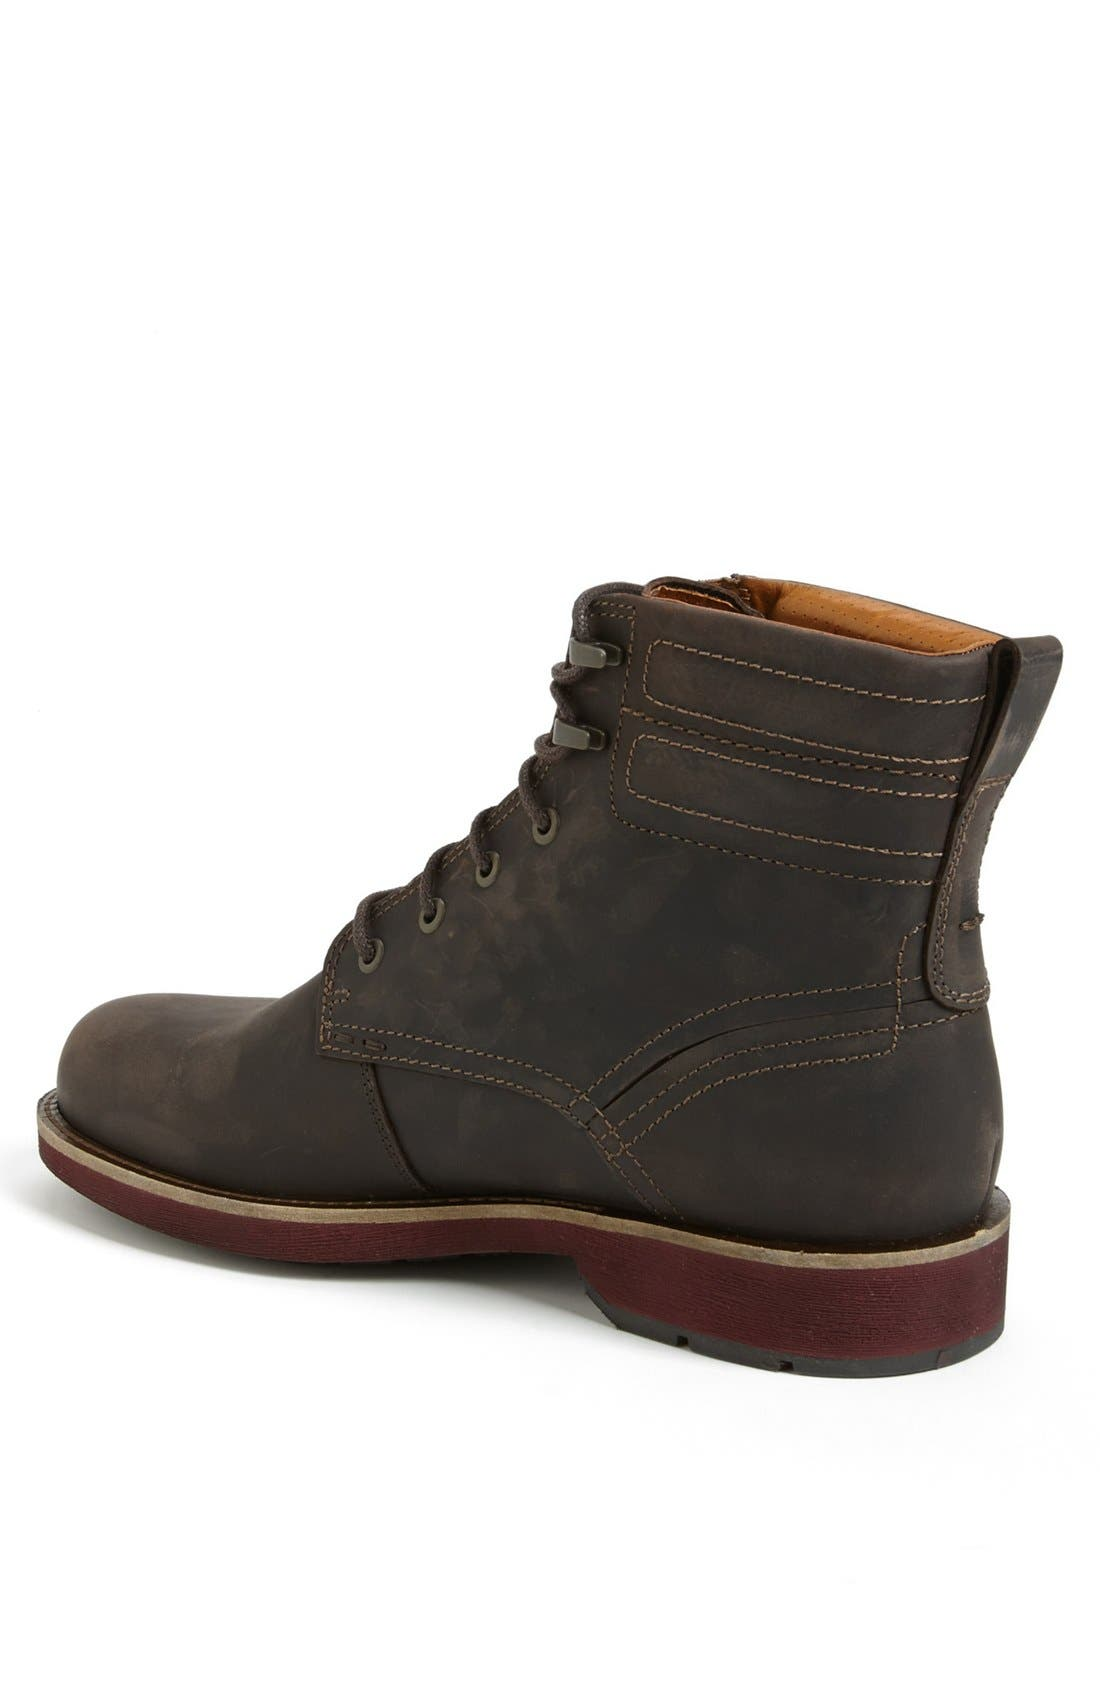 Alternate Image 2  - ECCO 'Bendix' Plain Toe Boot (Men)